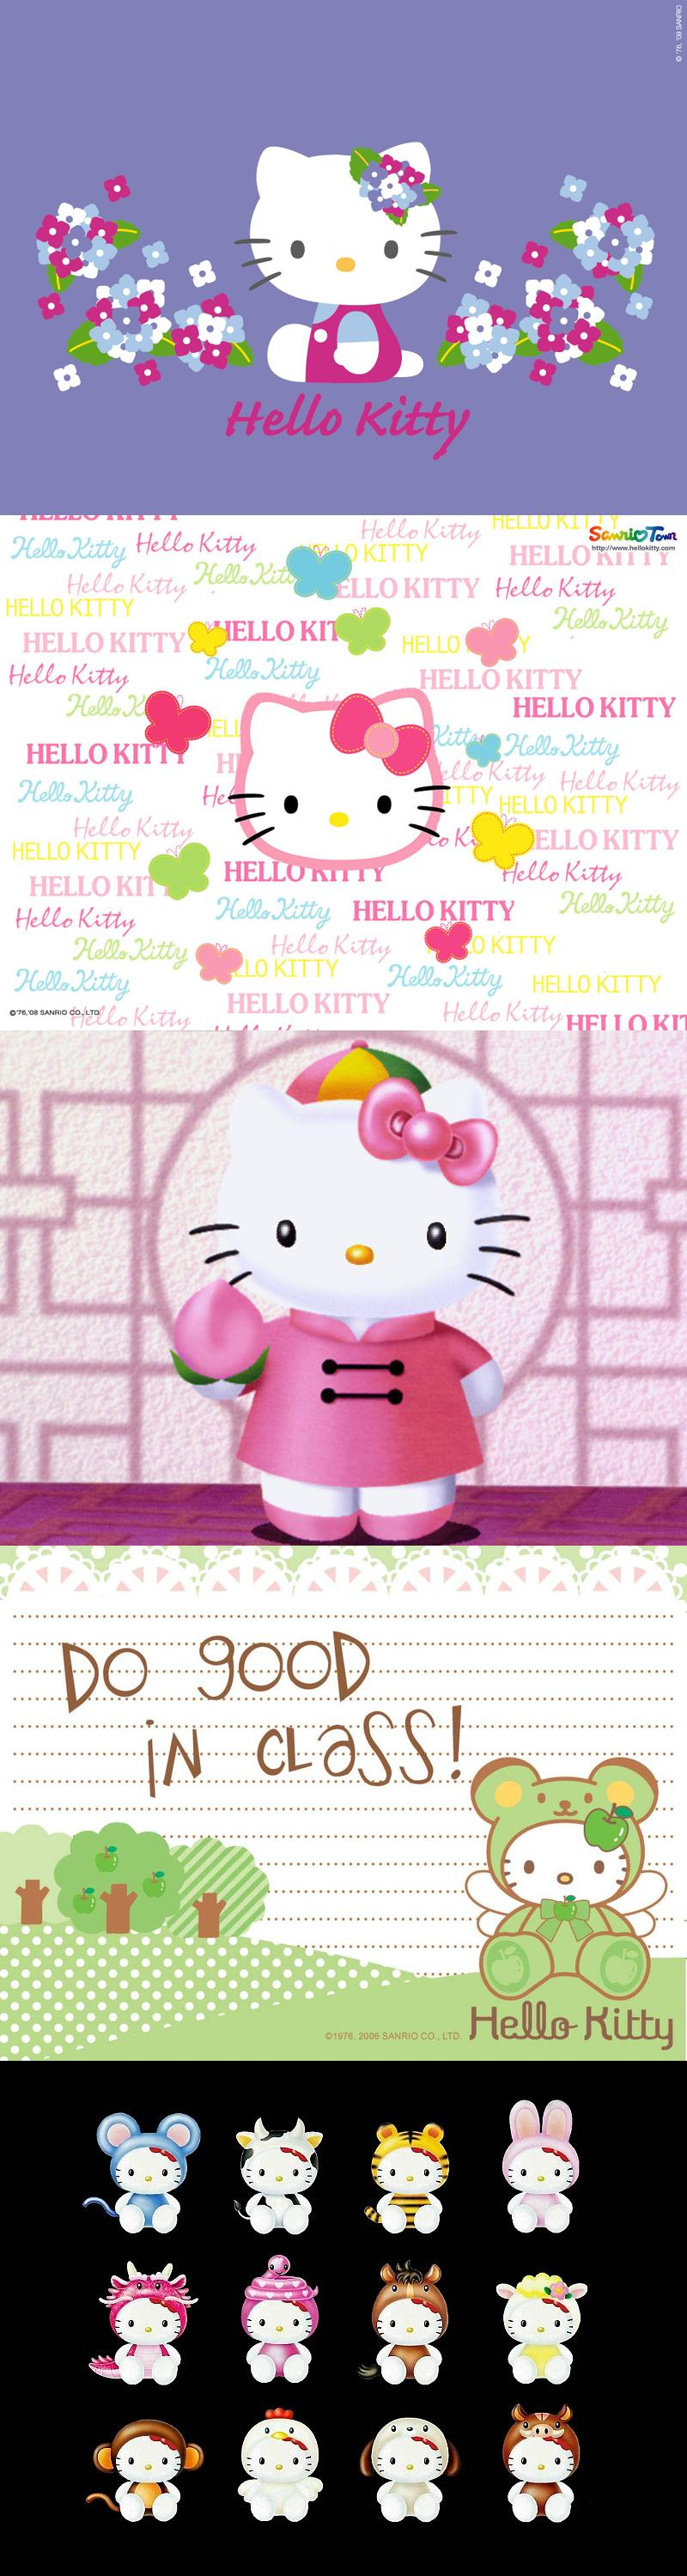 Hello Kitty Zodiac